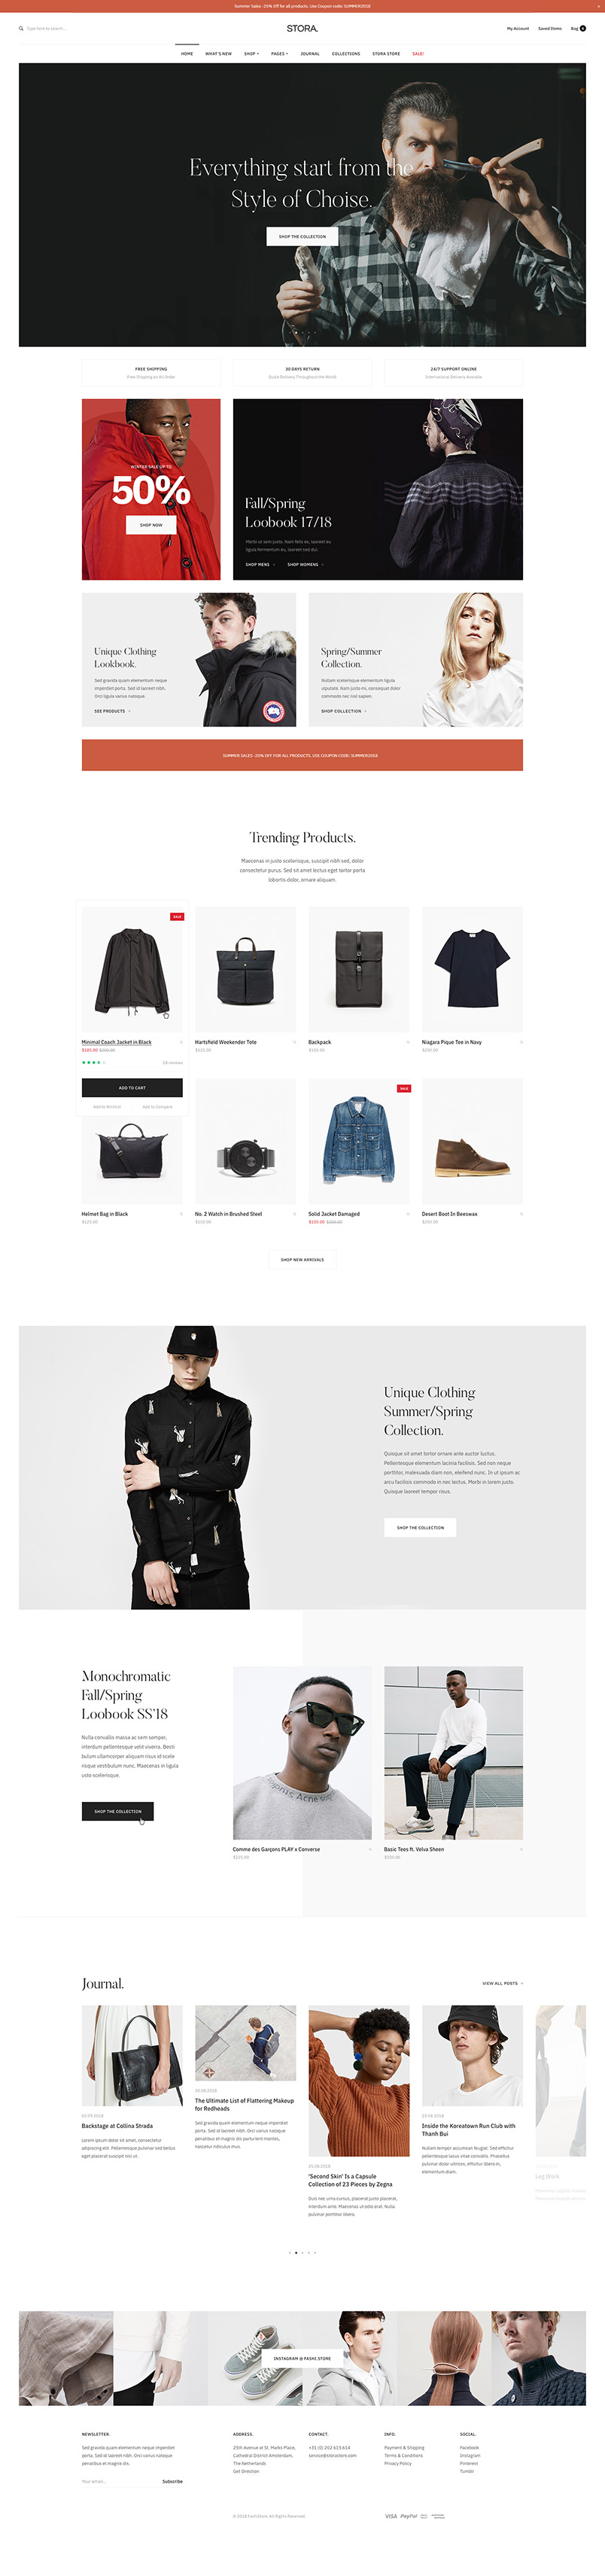 ecommerce joomla template home page GK Stora